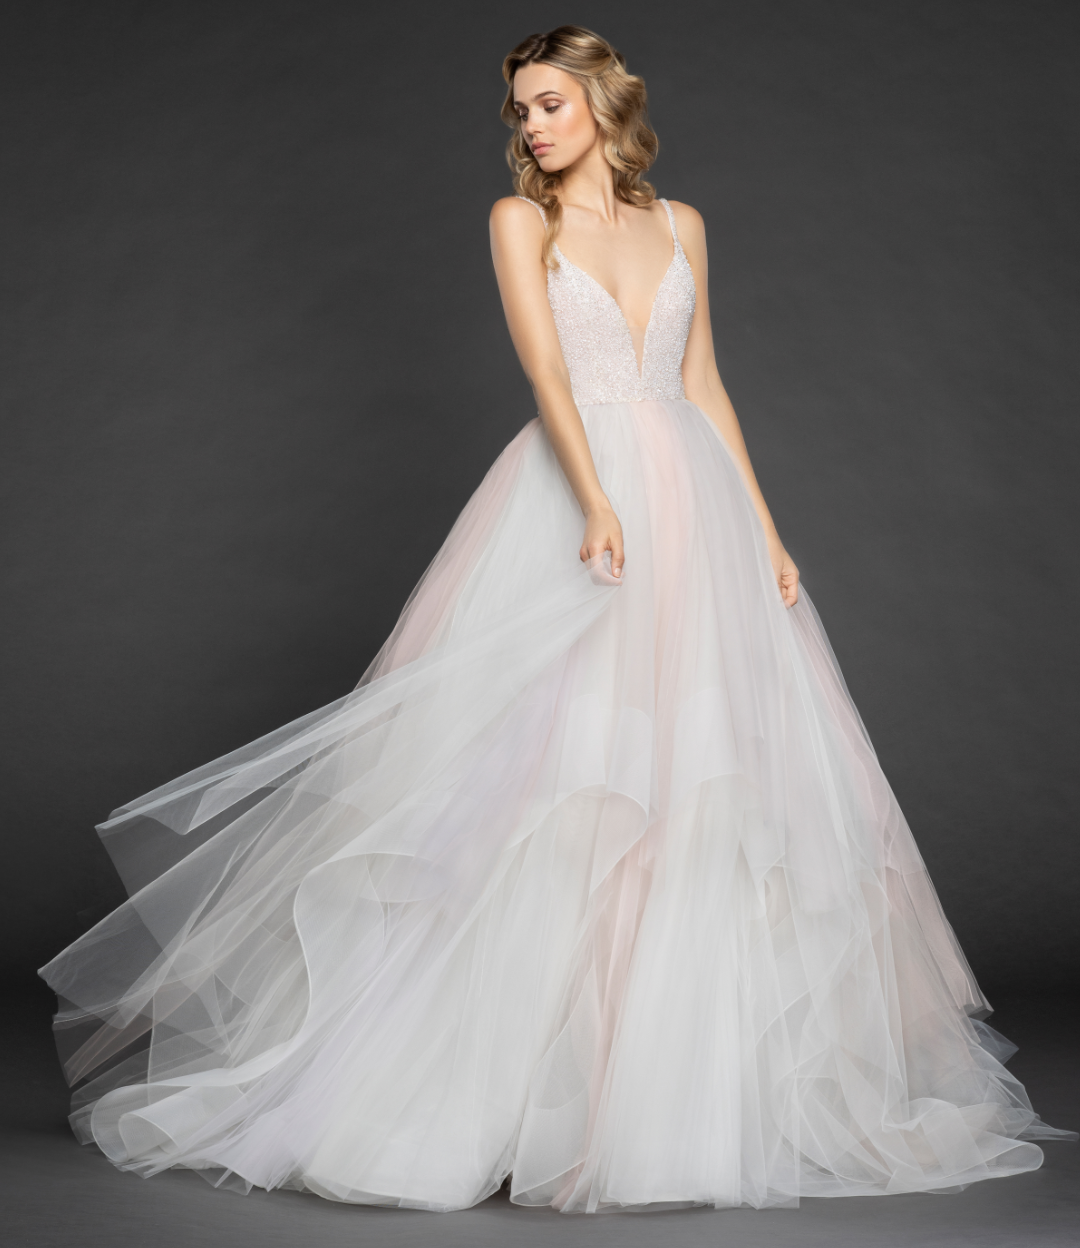 Hailey Paige Wedding Gowns: Colorful Bridal Gowns To Wear On Your Wedding Day